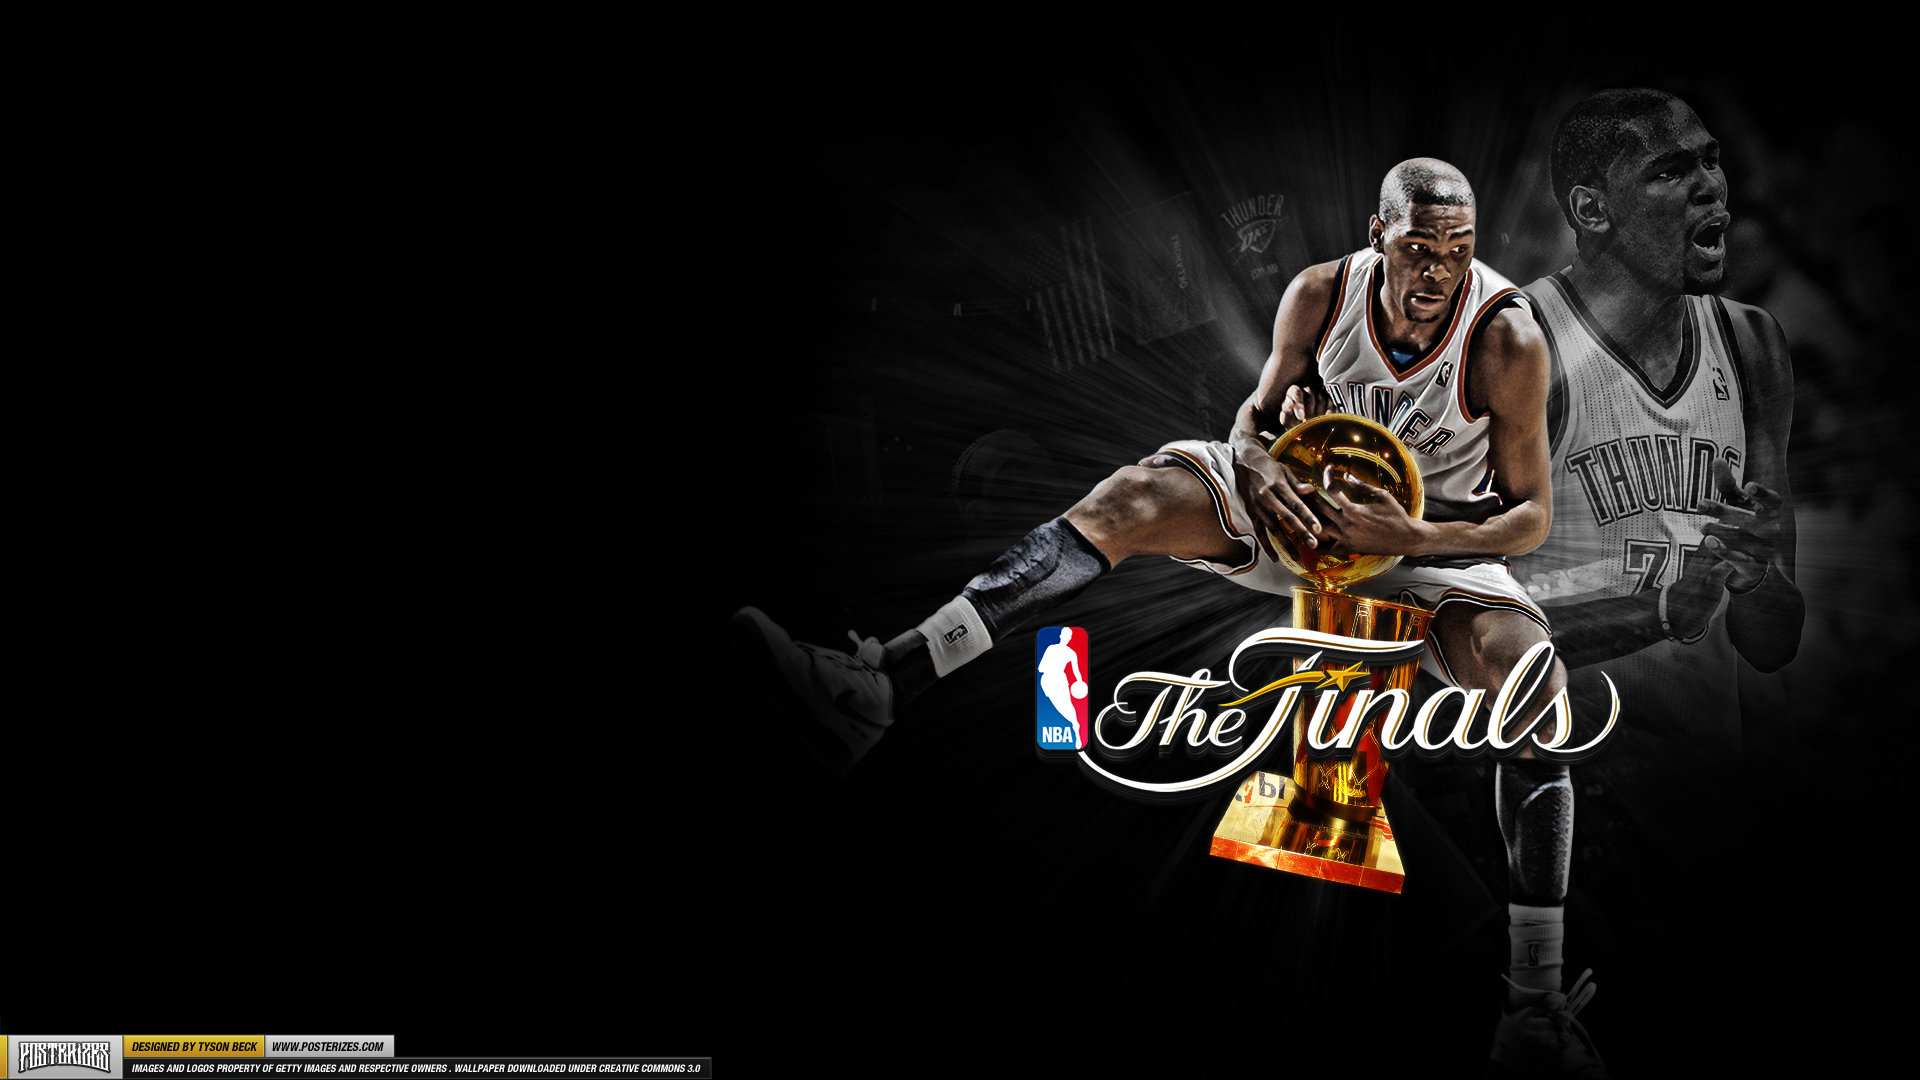 wallpaper nba durant trophy twitter kevin hunting online 1920x1080